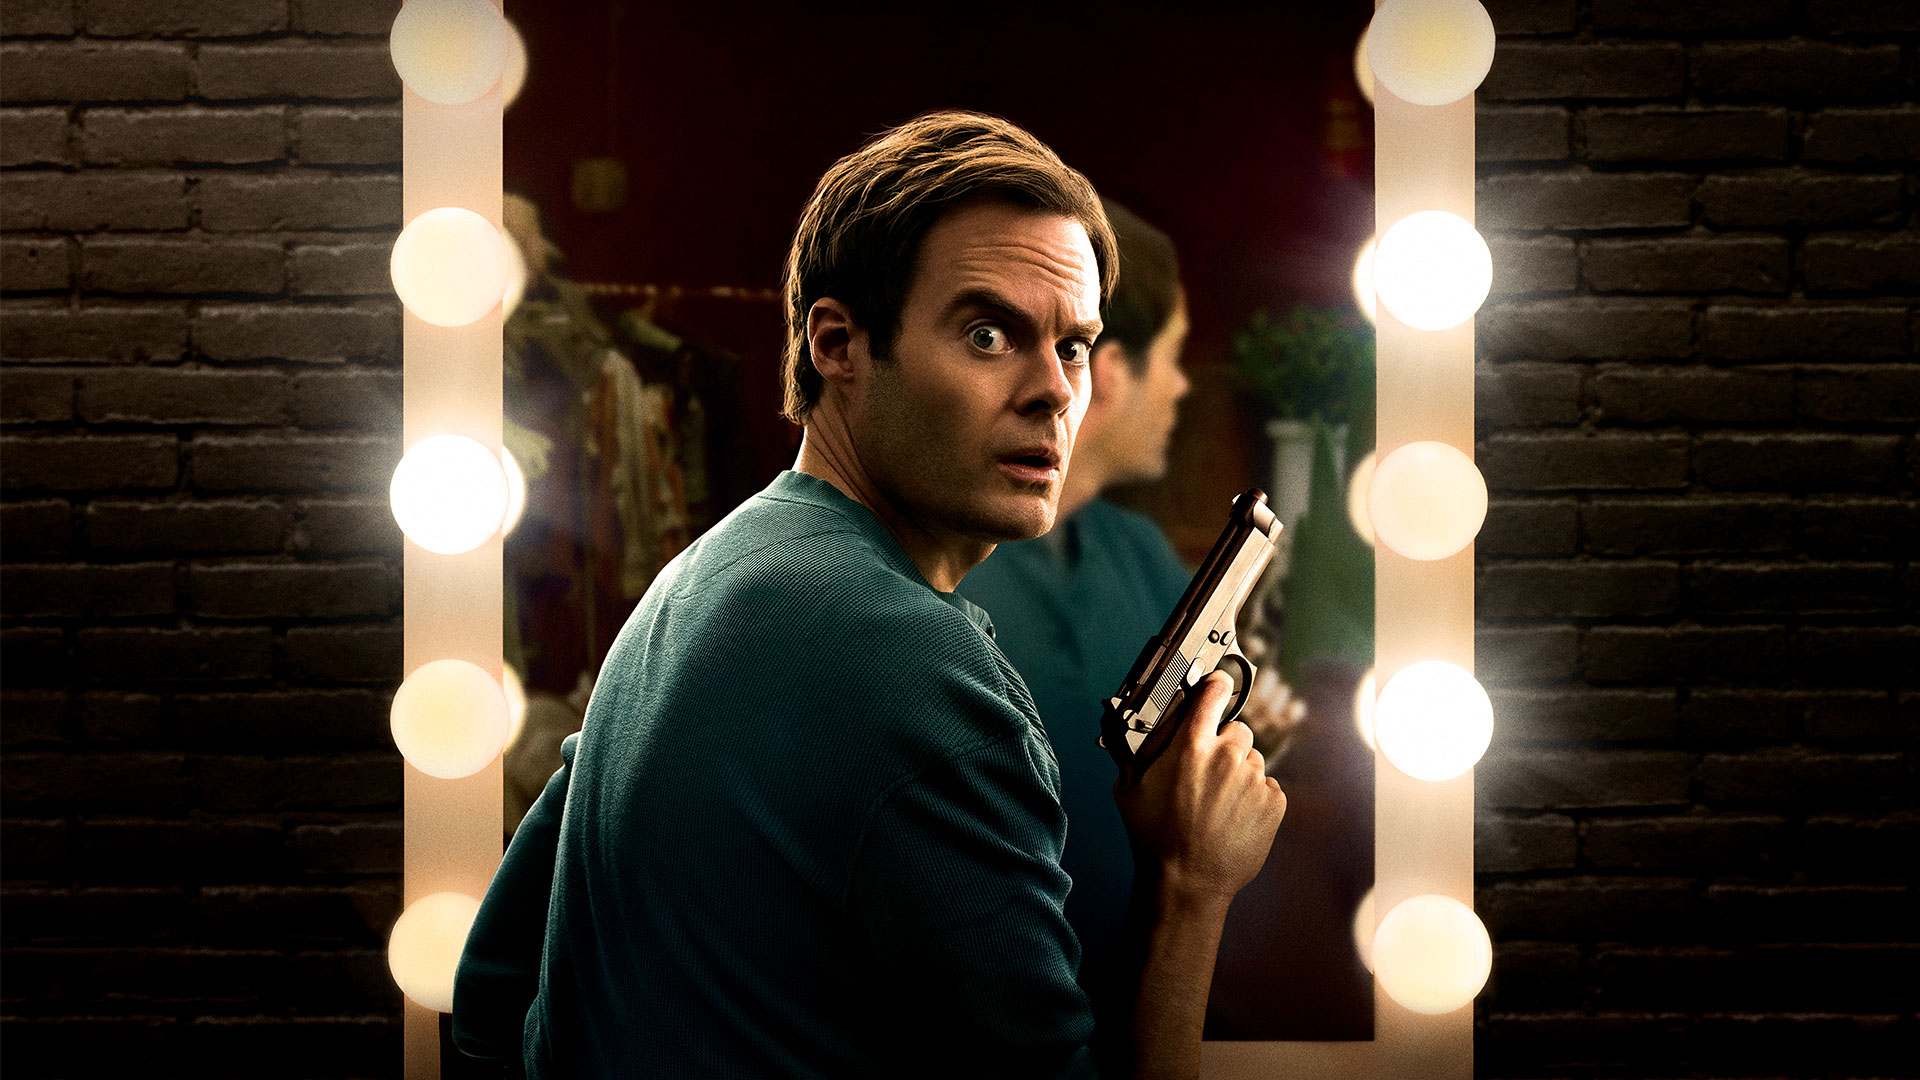 Bill Hader as Barry in HBO series